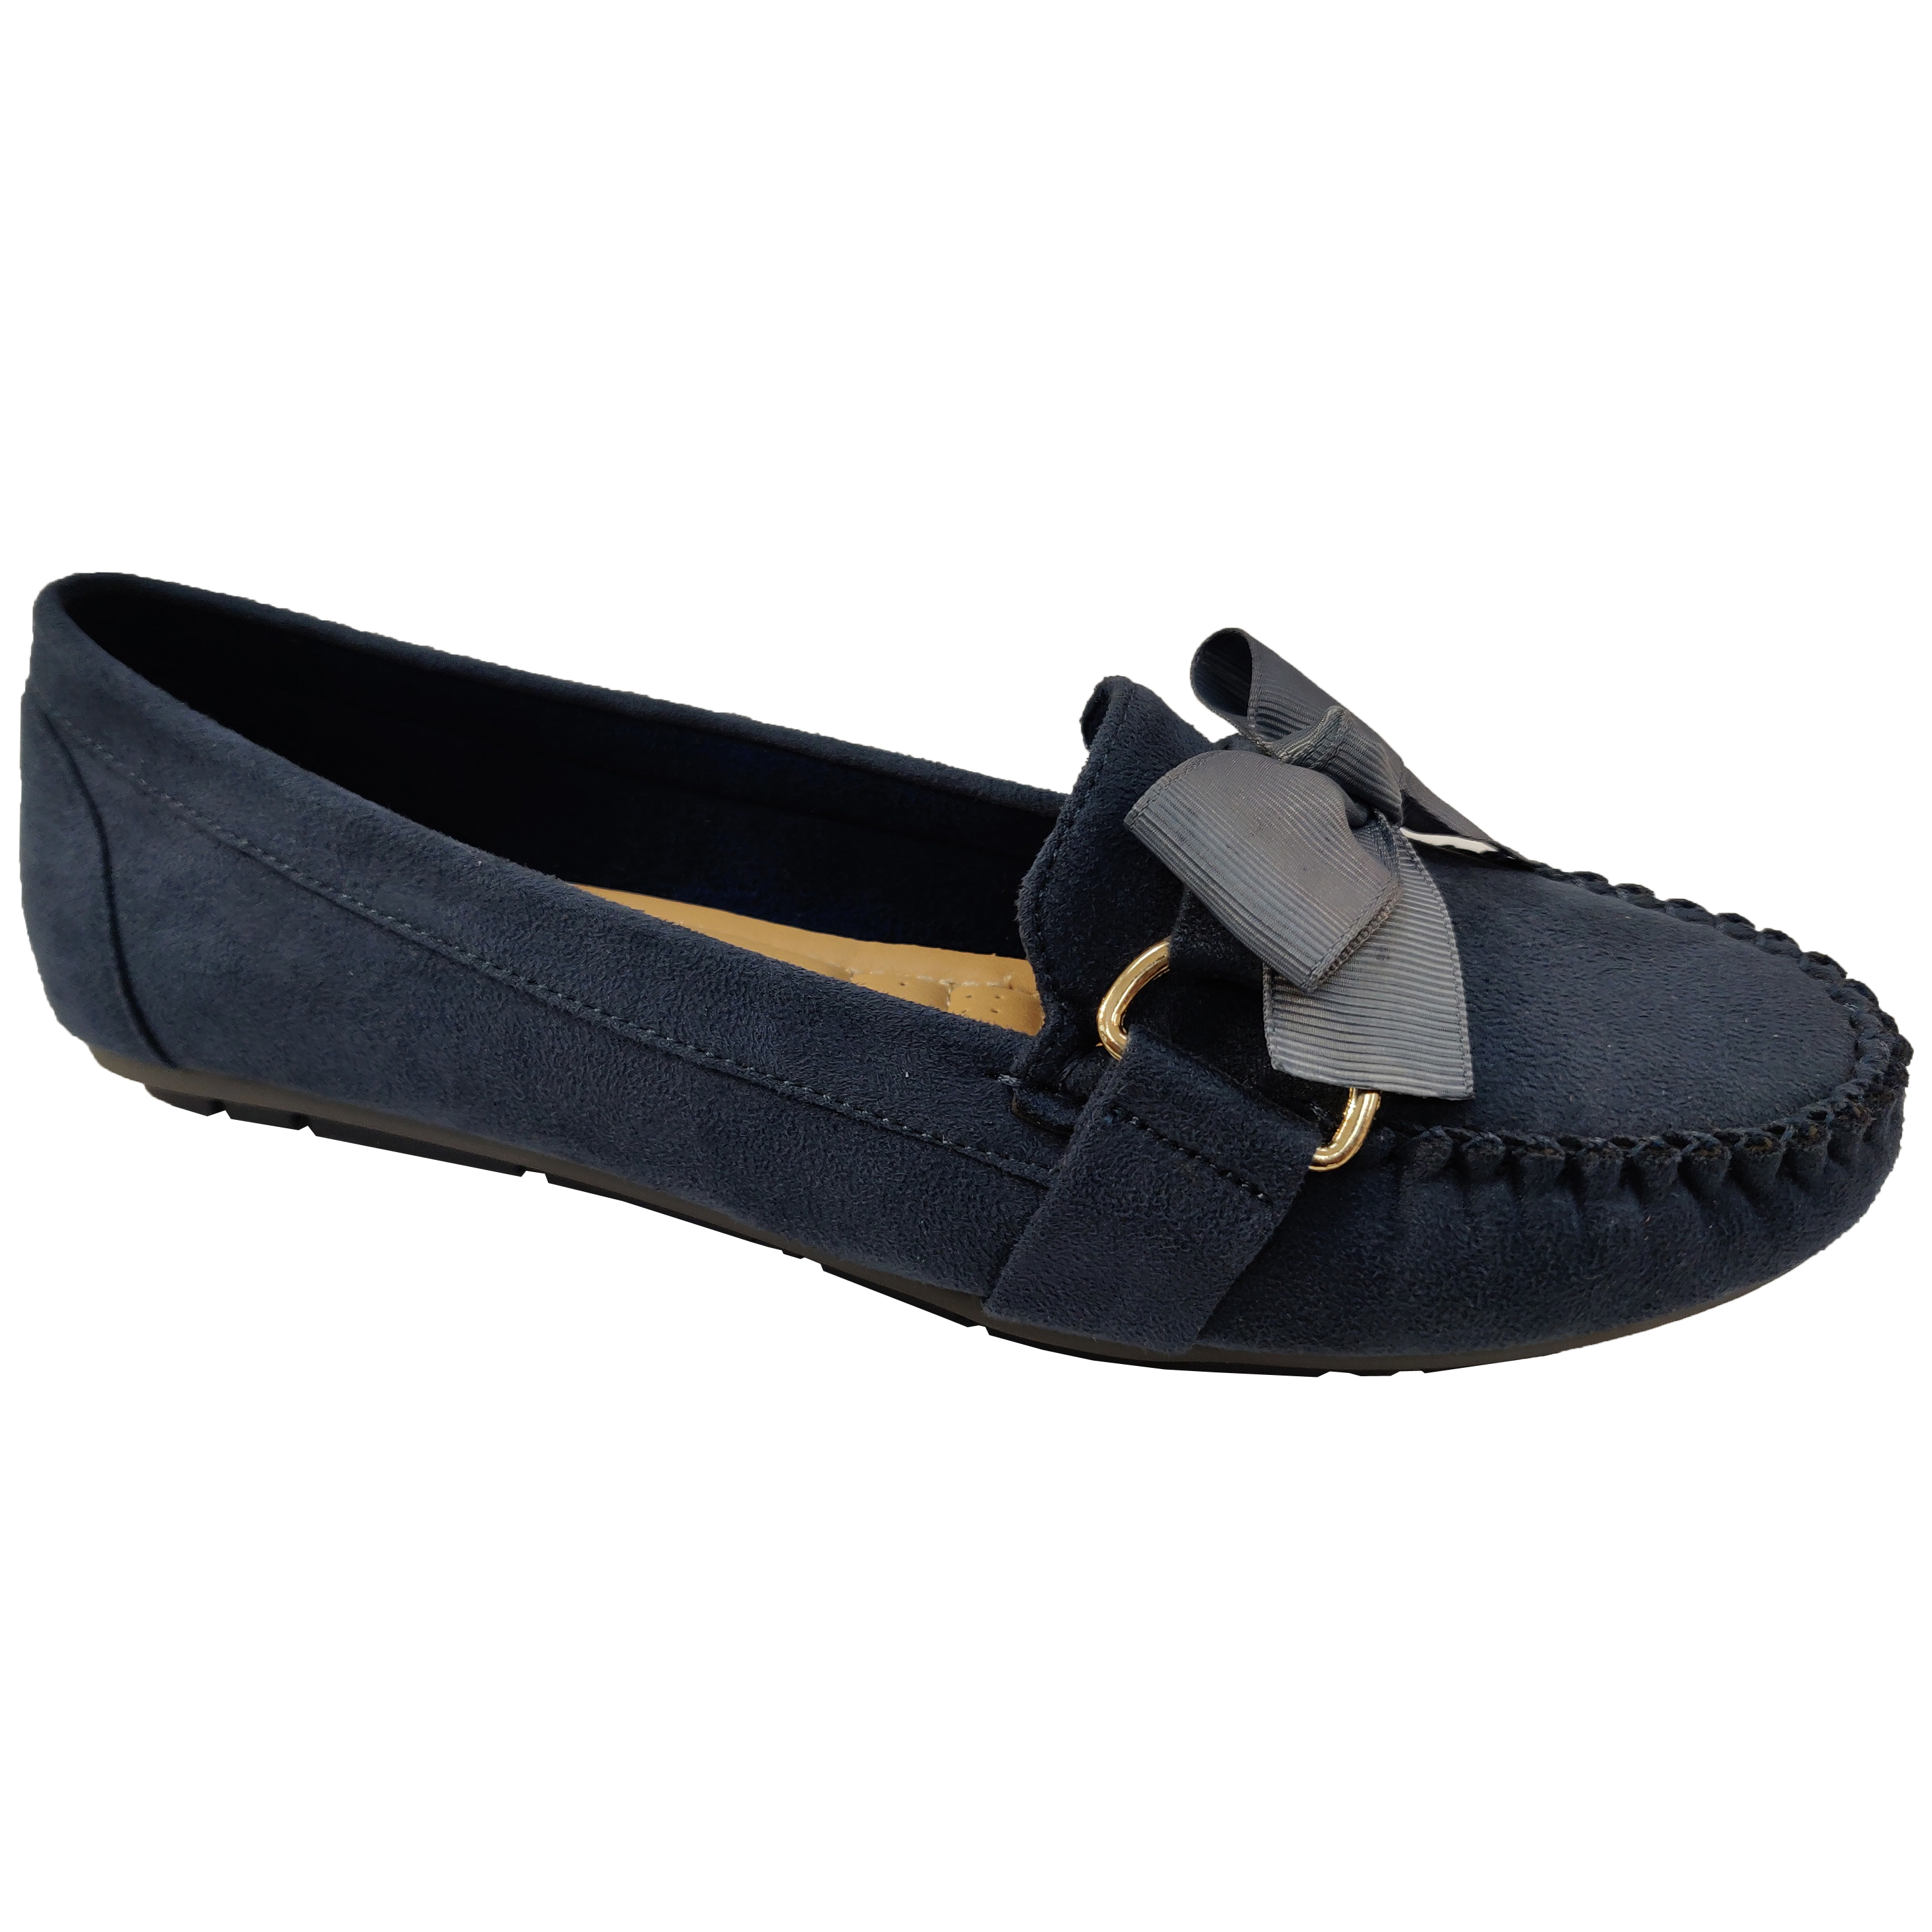 Ladies-Slip-On-Ballerina-Womens-Suede-Look-Pumps-Flat-Bow-Tassels-Shoes-Fashion thumbnail 11